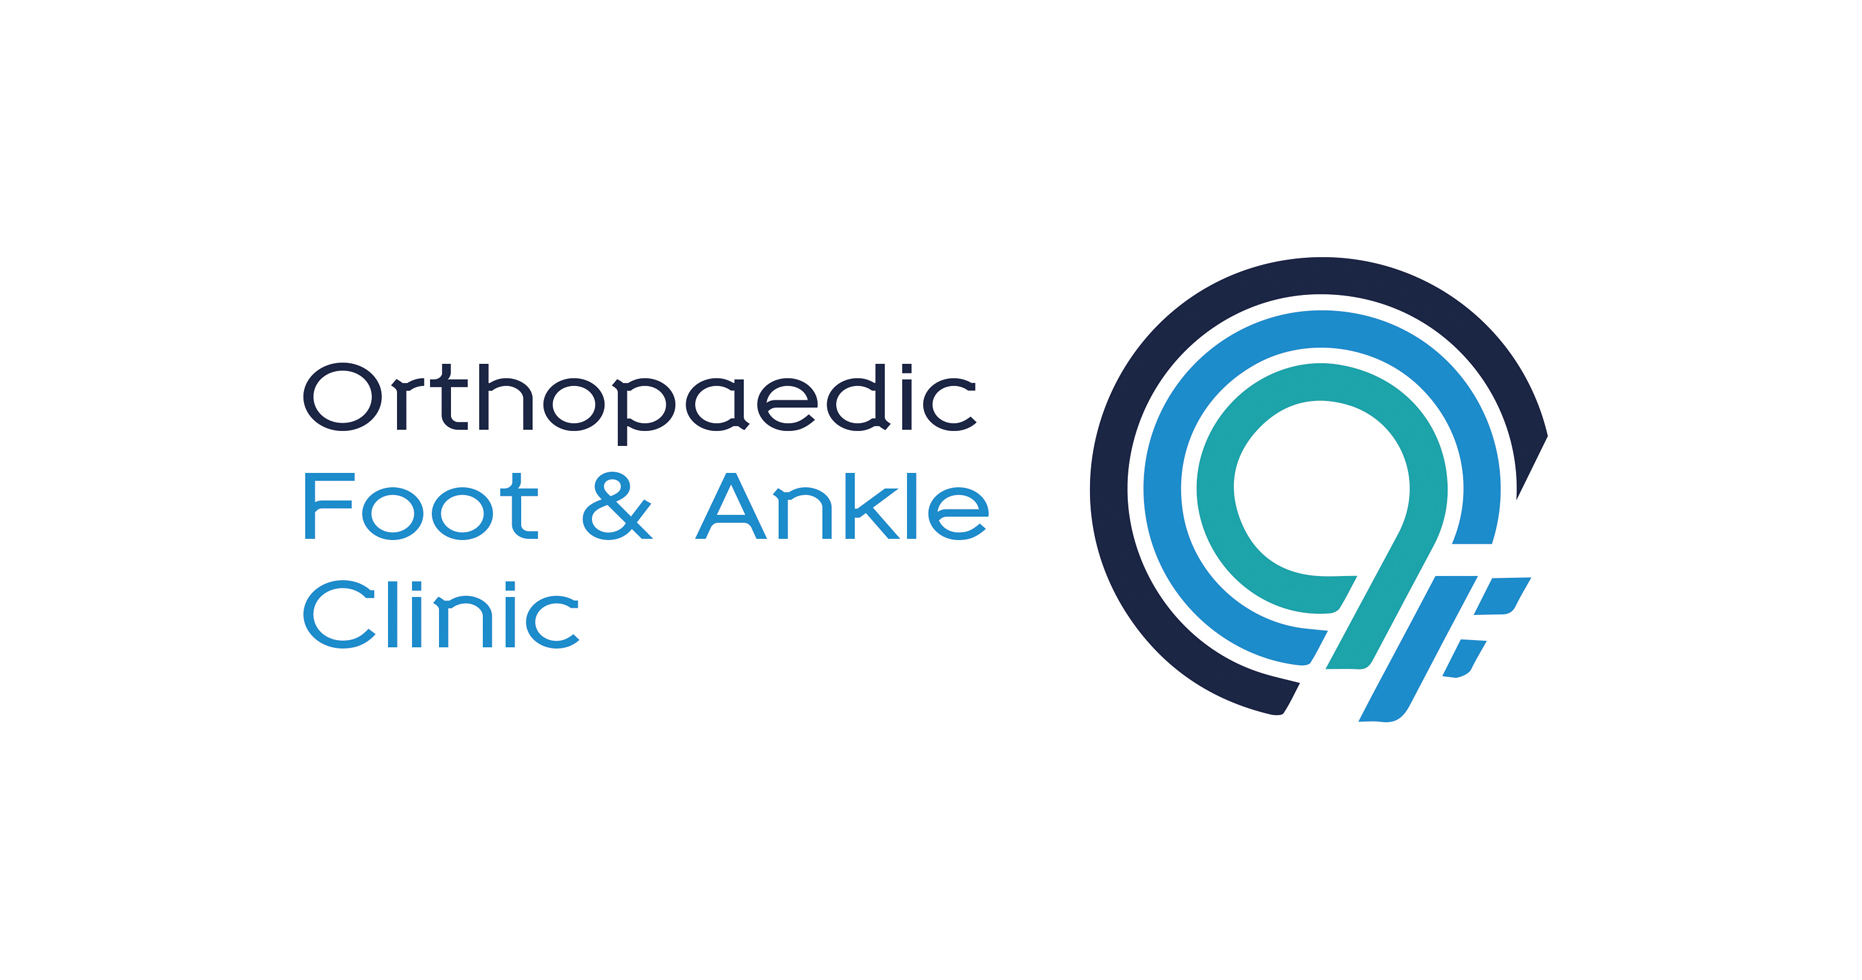 A logo of a series of circles in a range of blue hues alongside the words 'Orthopaedic Foot & Ankle Clinic'